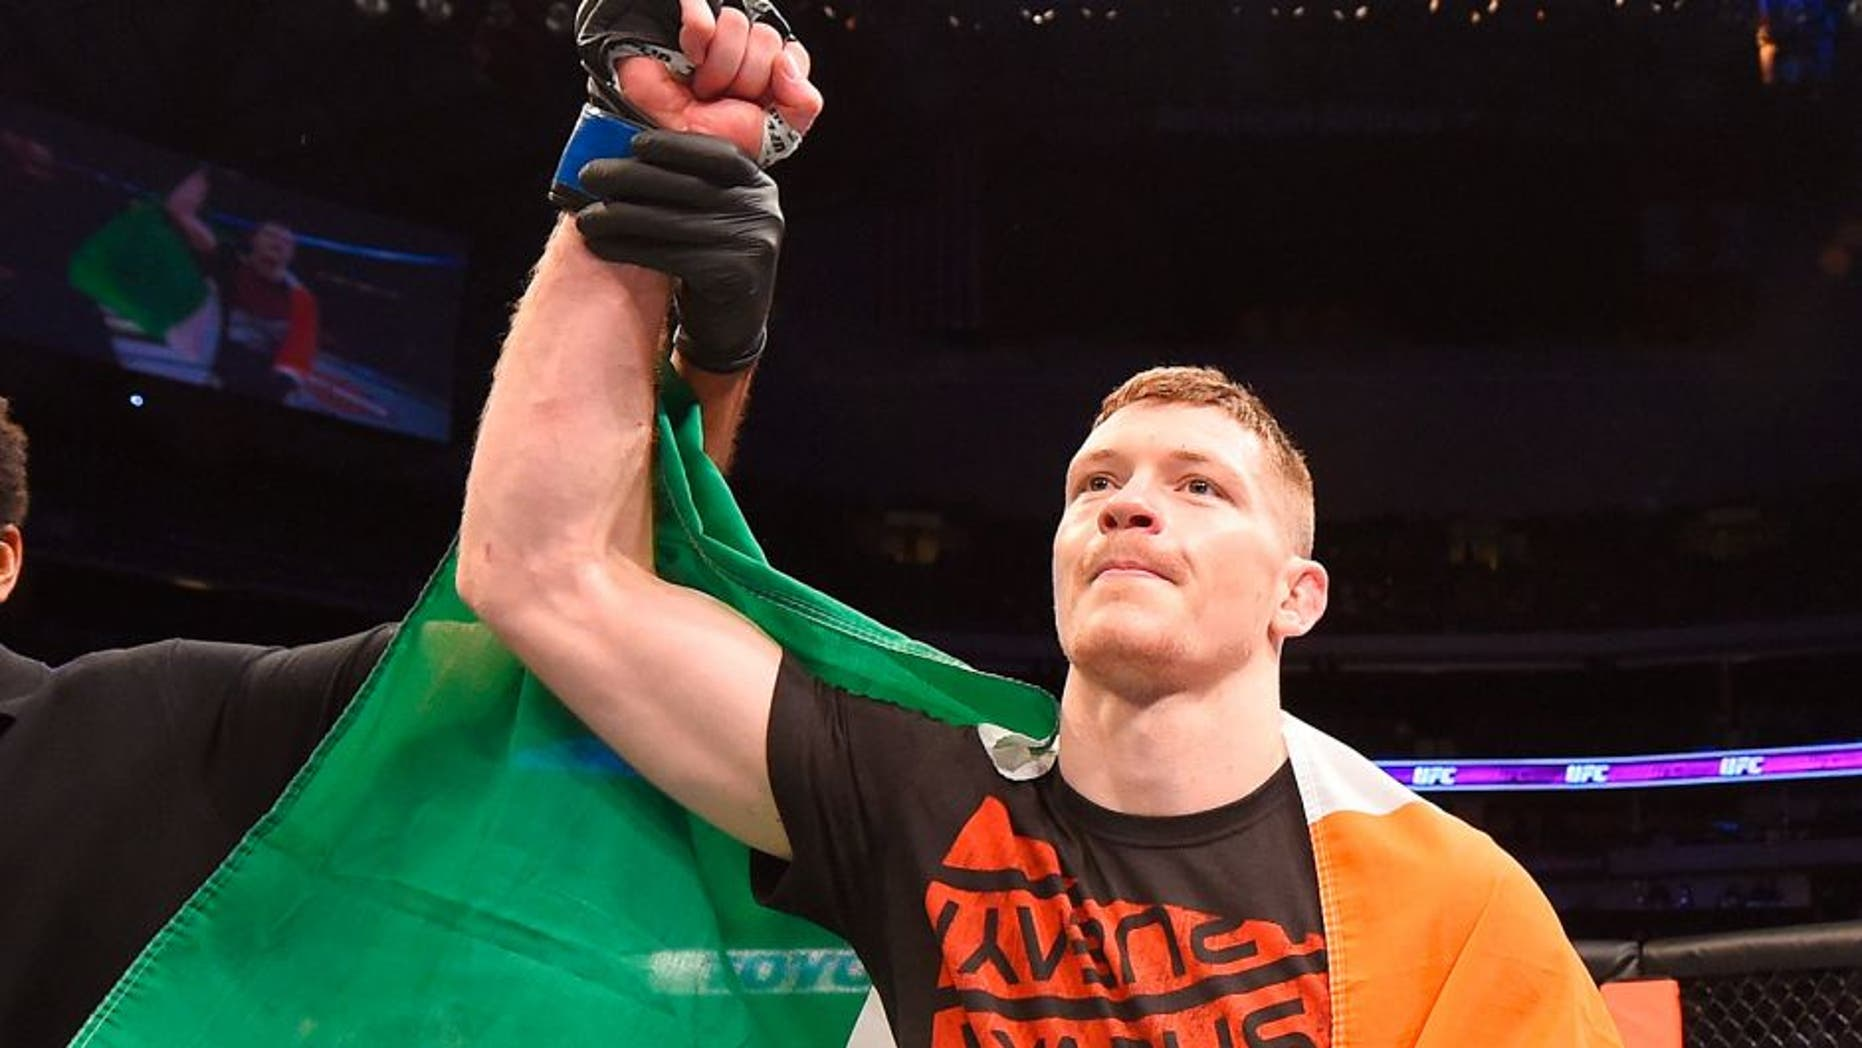 DALLAS, TX - MARCH 14: Joseph Duffy celebrates after defeating Jake Lindsey in their lightweight bout during the UFC 185 event at the American Airlines Center on March 14, 2015 in Dallas, Texas. (Photo by Josh Hedges/Zuffa LLC/Zuffa LLC via Getty Images)